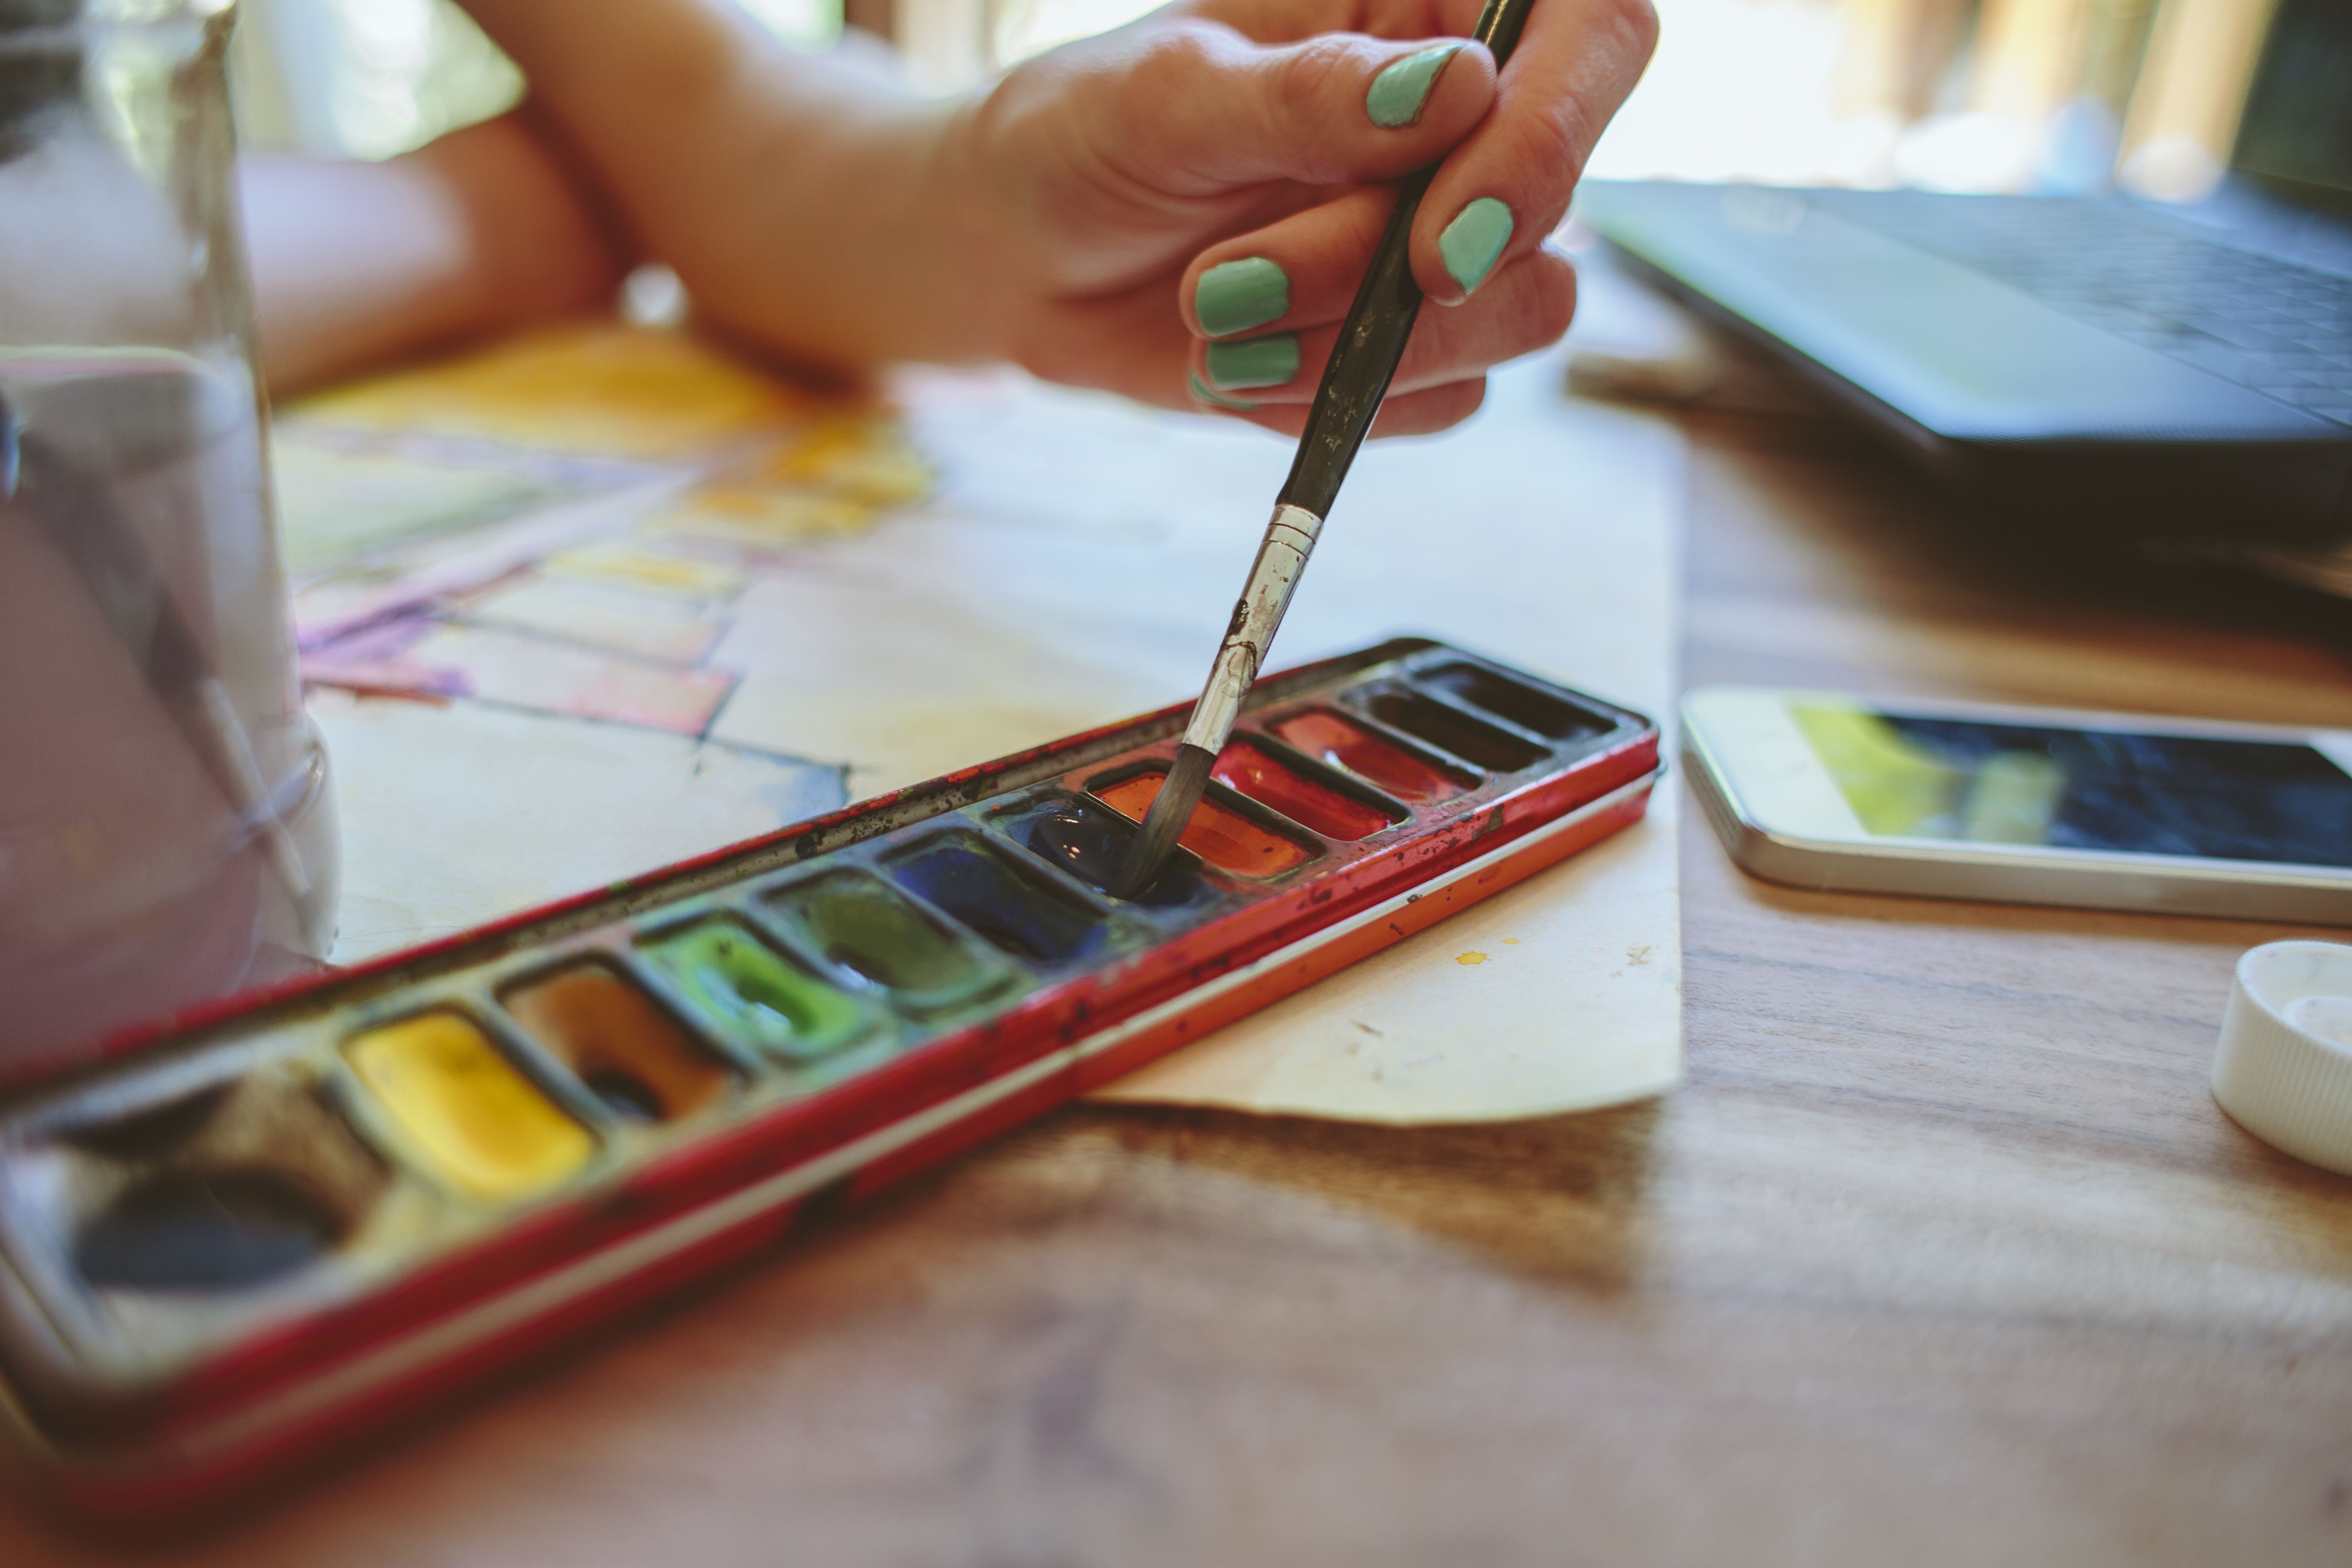 An artist painting with watercolours